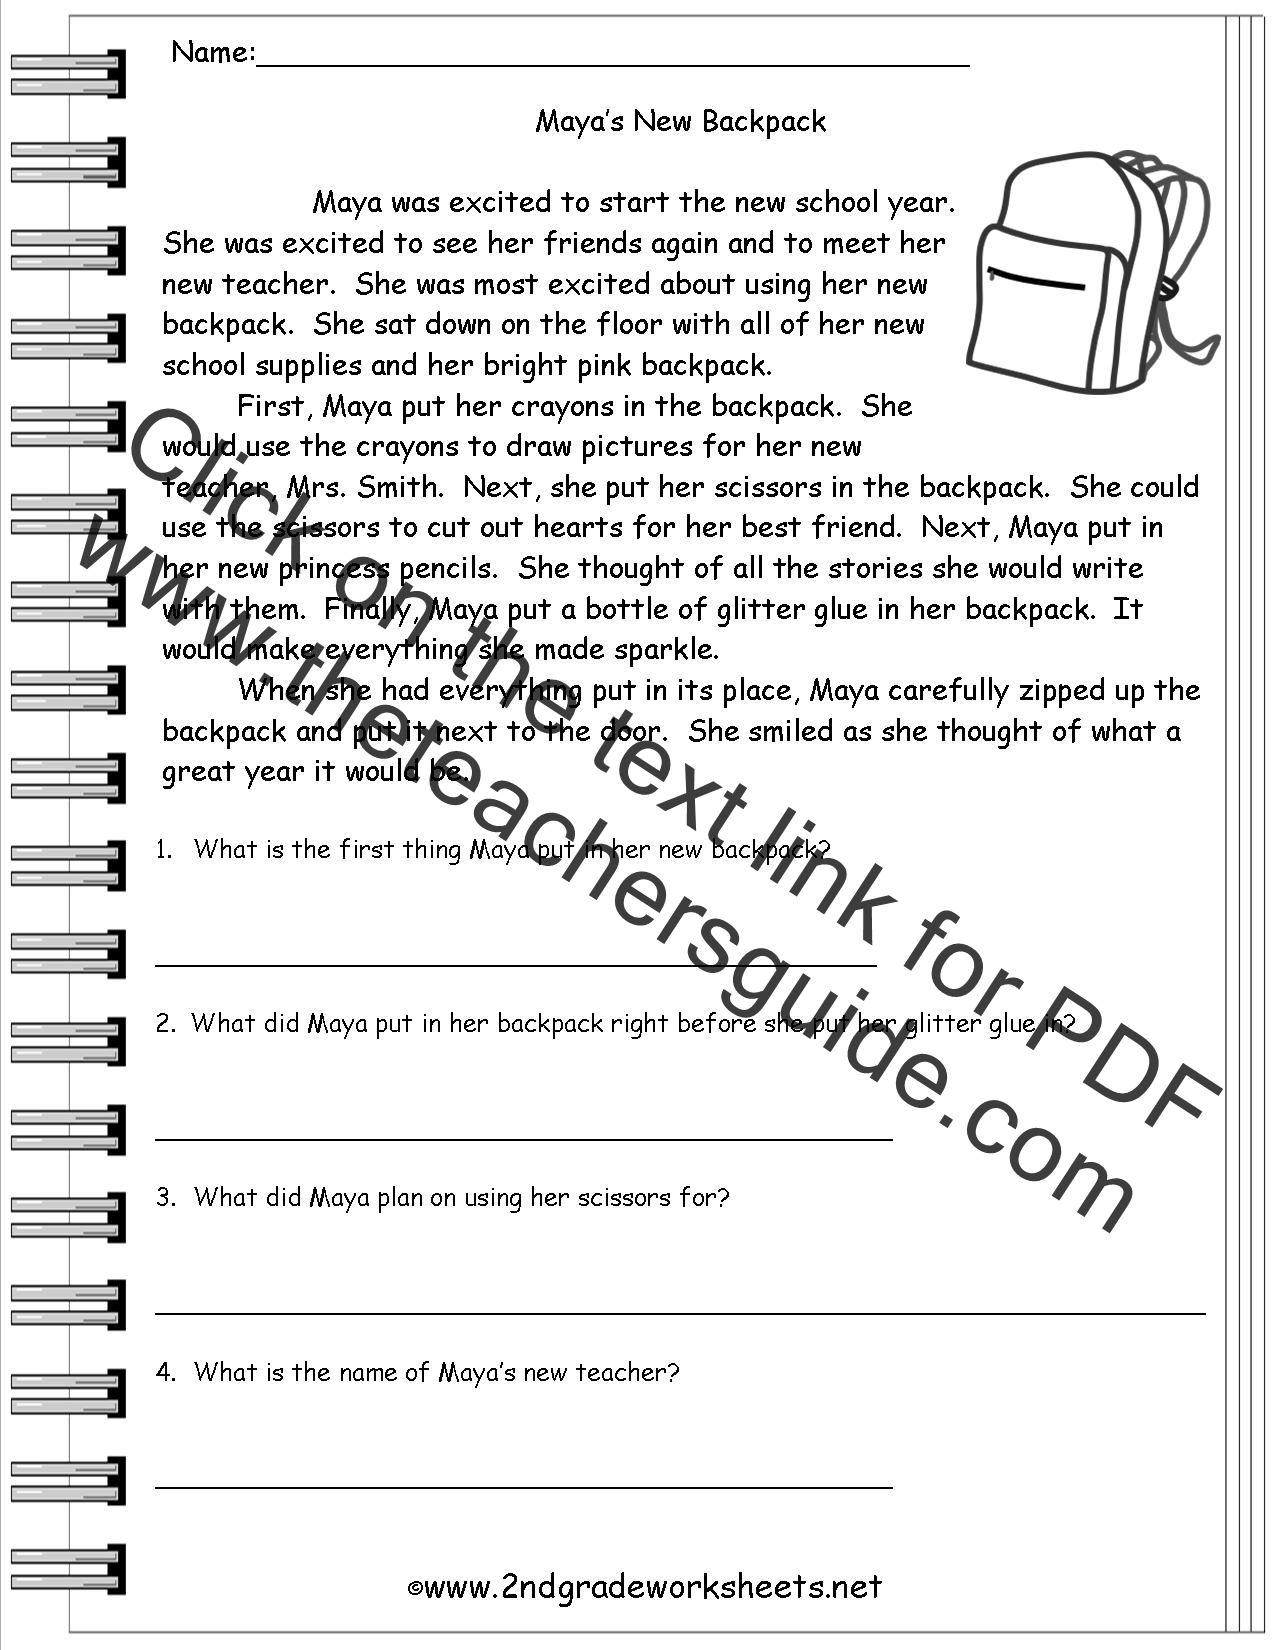 Worksheets Second Grade Reading Worksheets Free Printable reading worksheeets literature worksheets